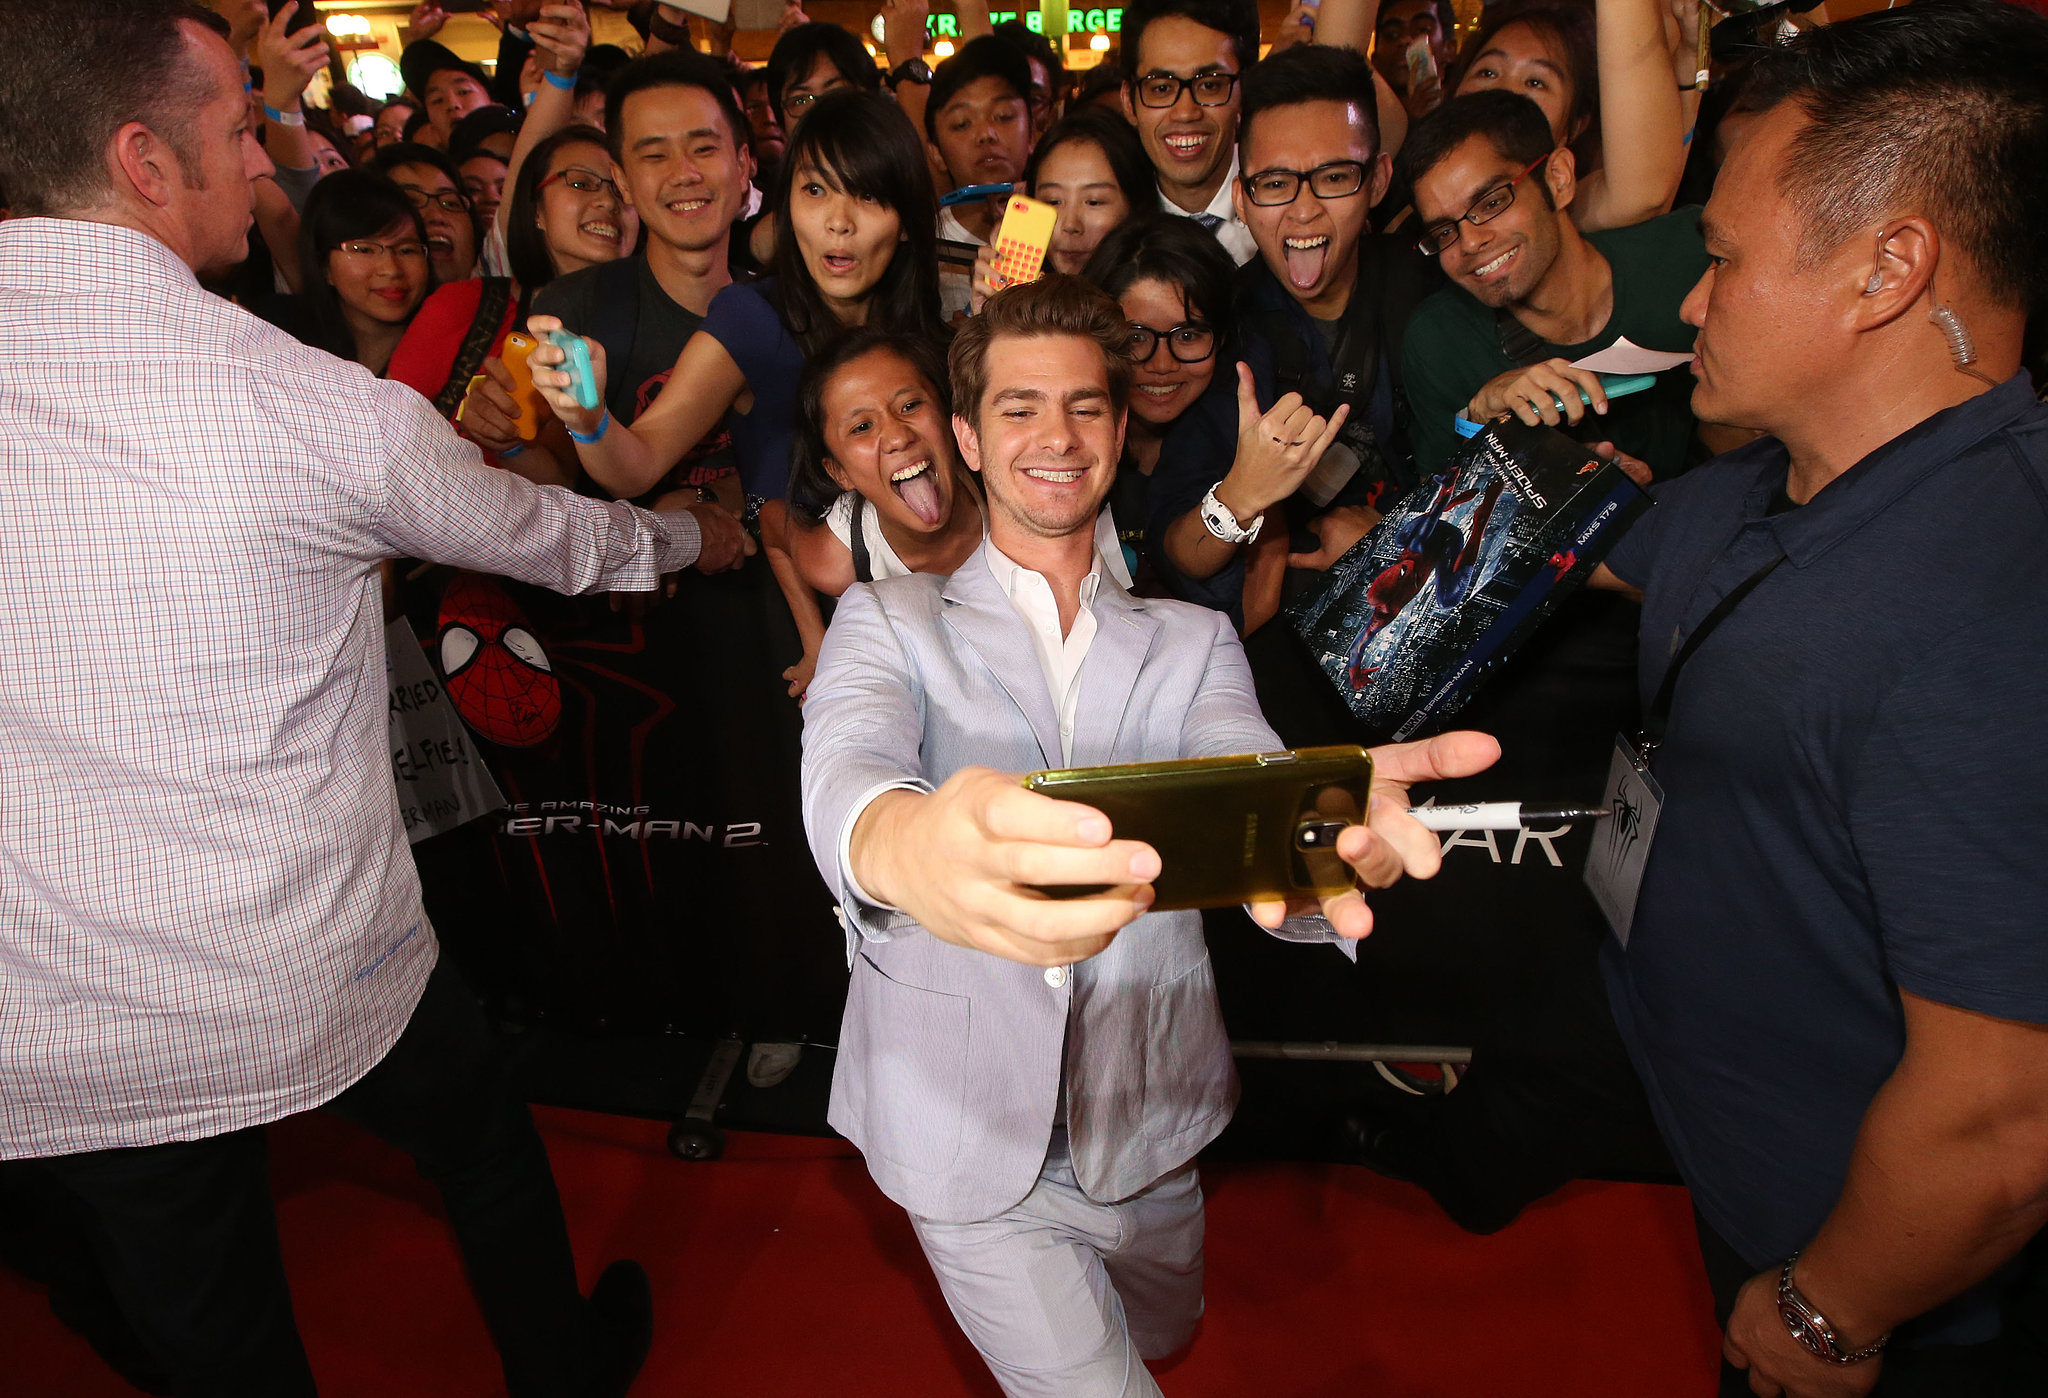 Andrew Garfield snapped a big group selfie at a fan event in Singapore in March 2014.